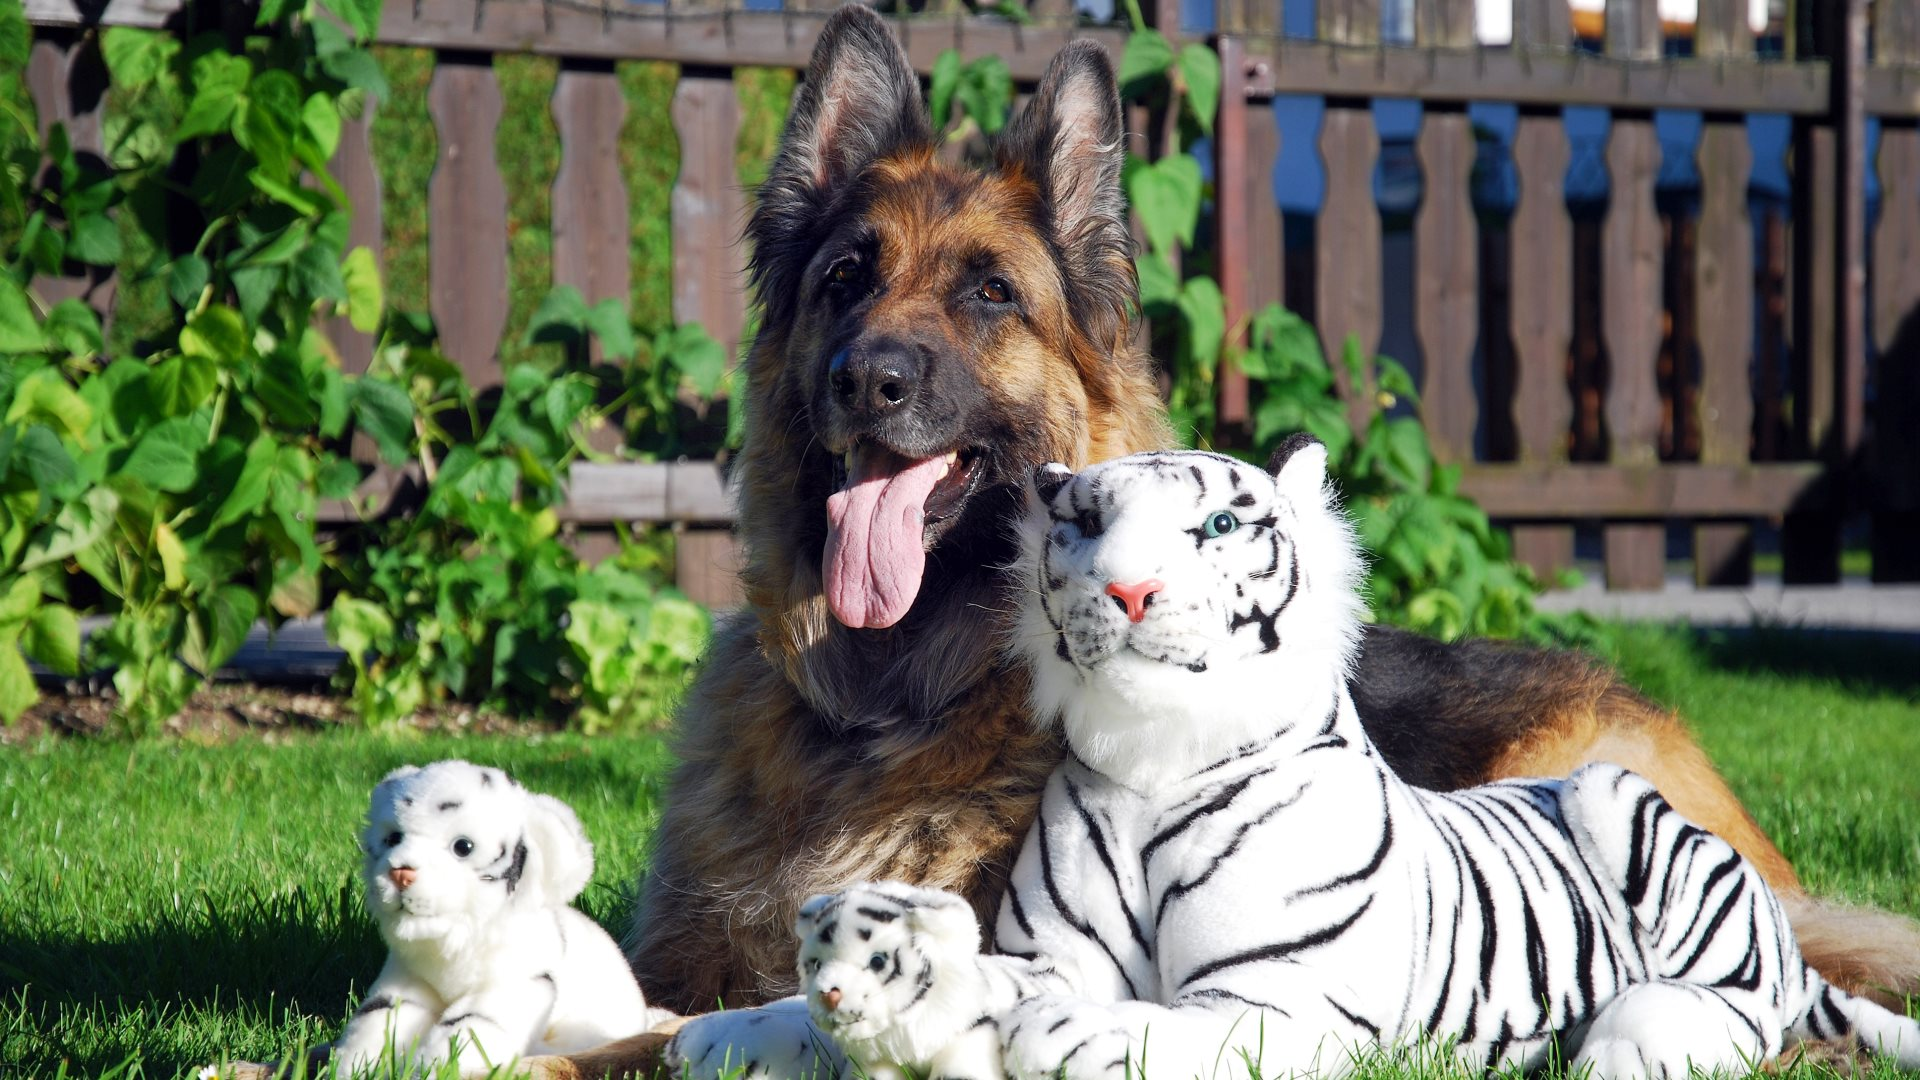 Cute Bengal Wallpapers Hd 1366x768 A Long Haired German Shepherd With White Tiger Stuffed